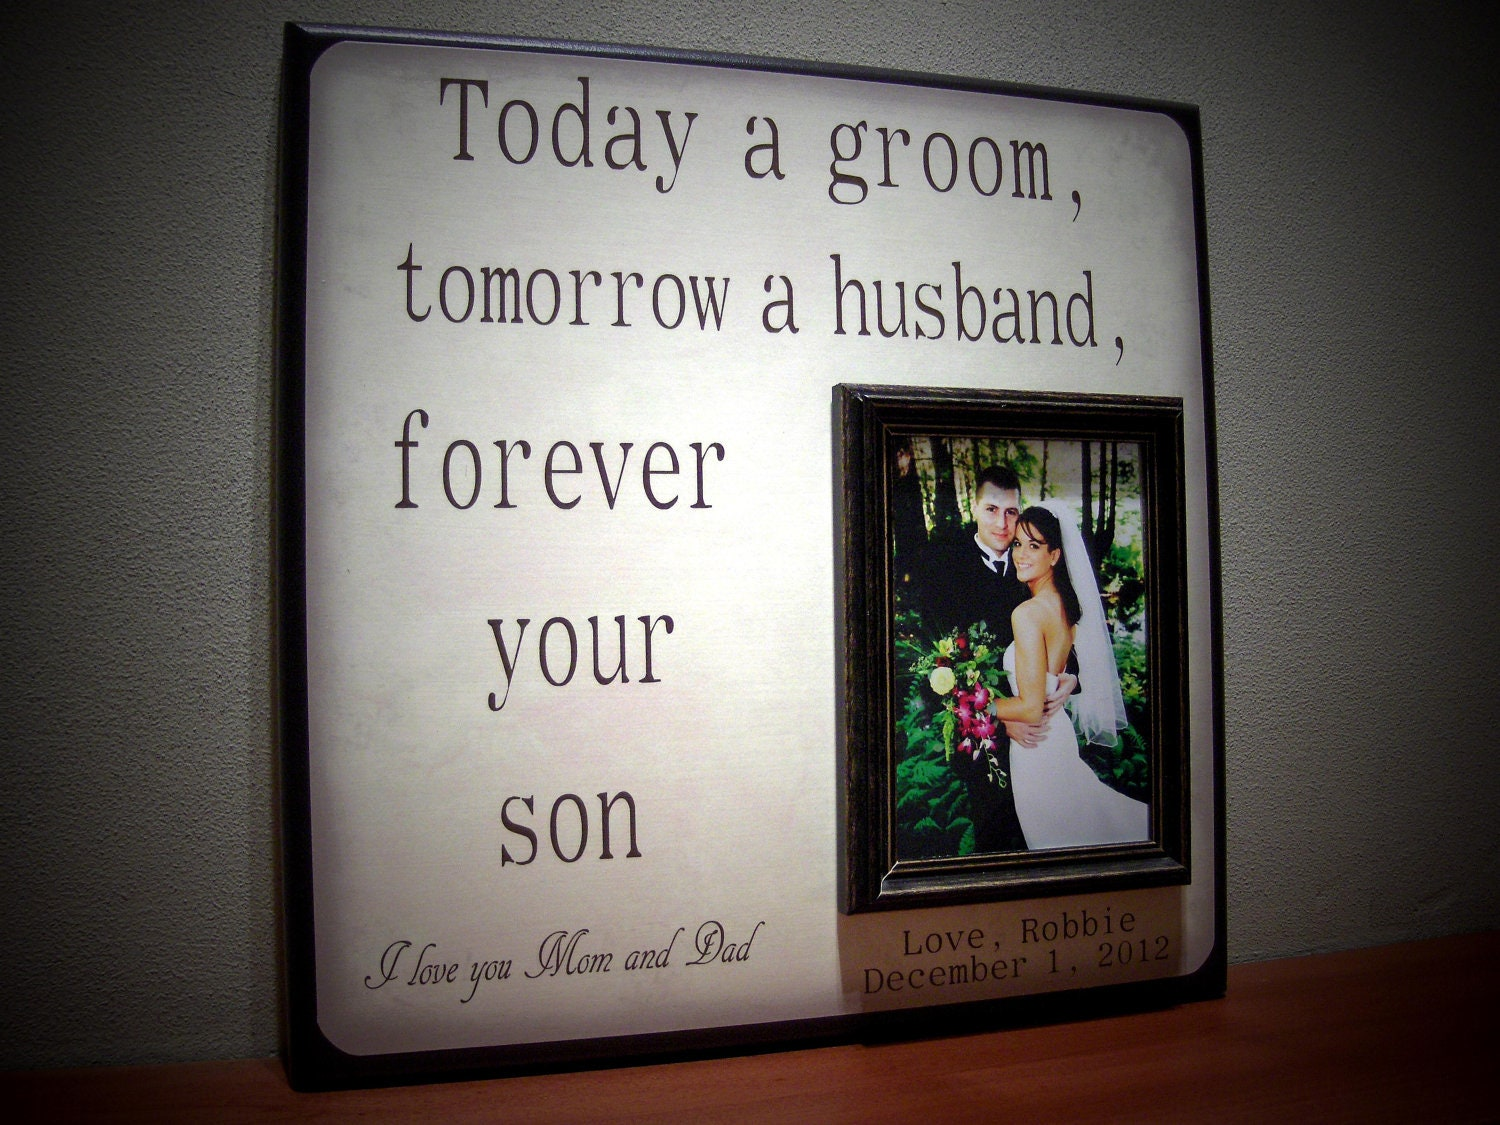 Thank You Present For Parents After Wedding : Mother of the Groom Gift Father of the Groom by YourPictureStory